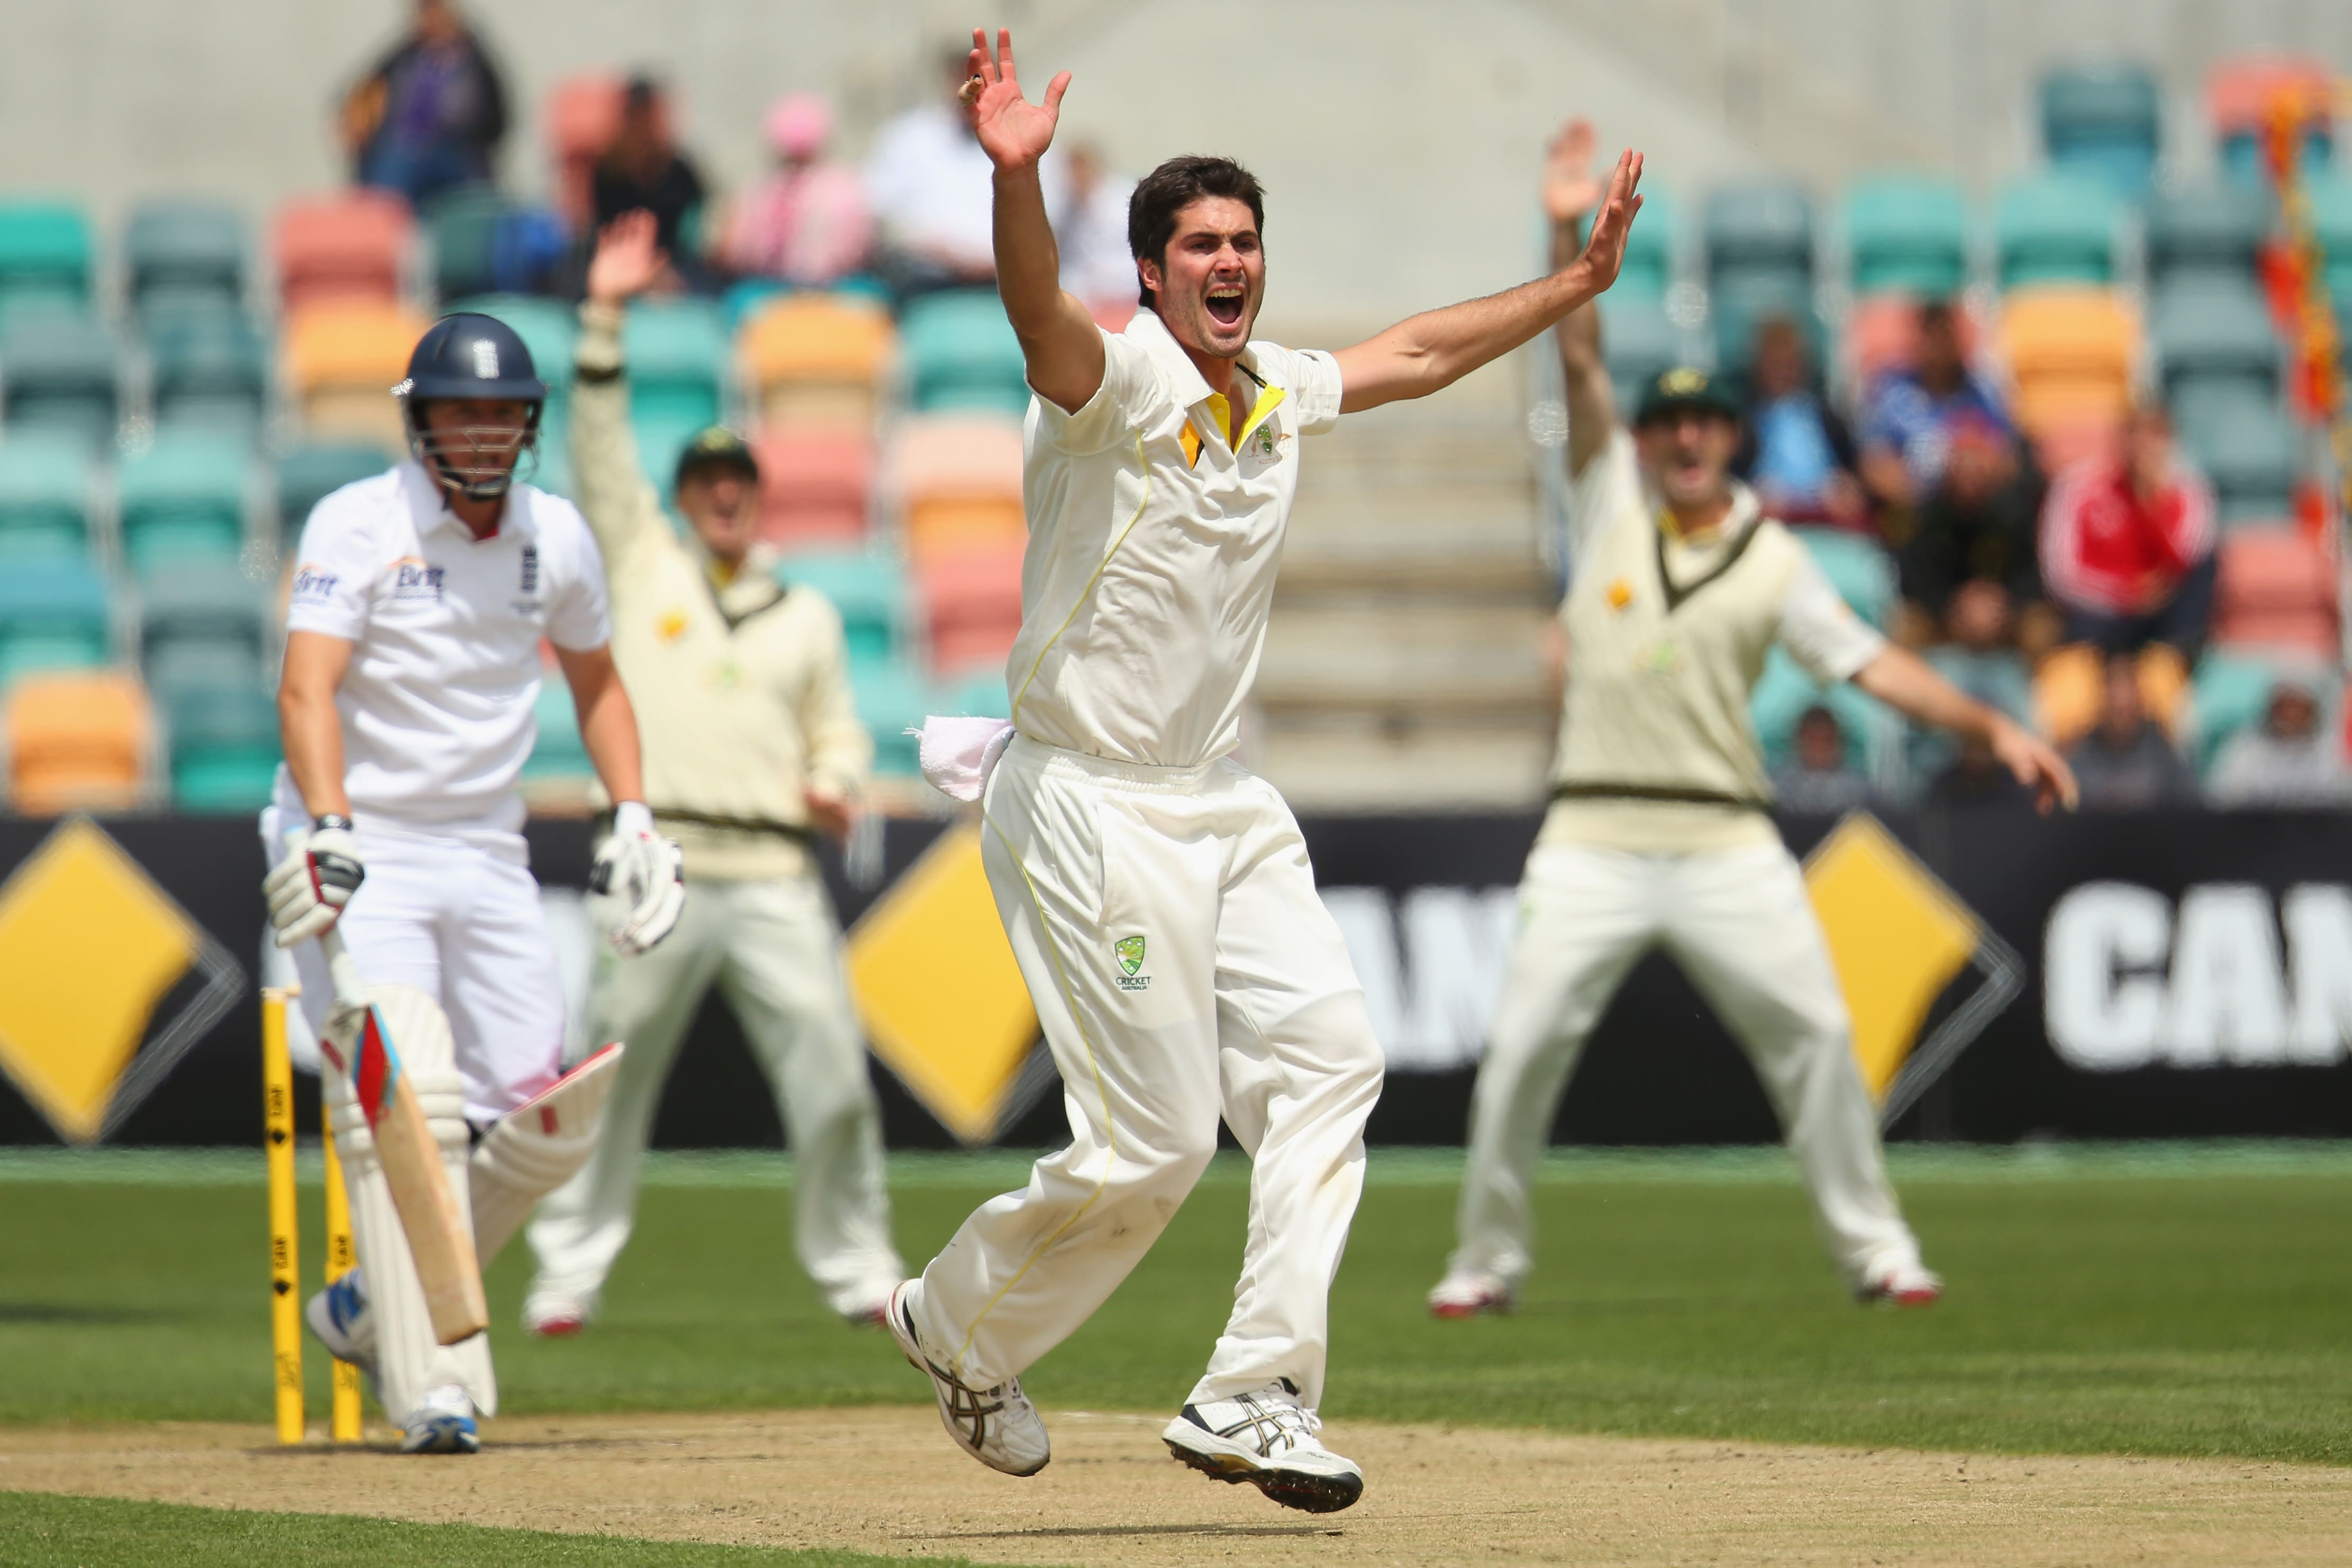 Ashes 2013-14: England's tour match against Australia A ends in draw